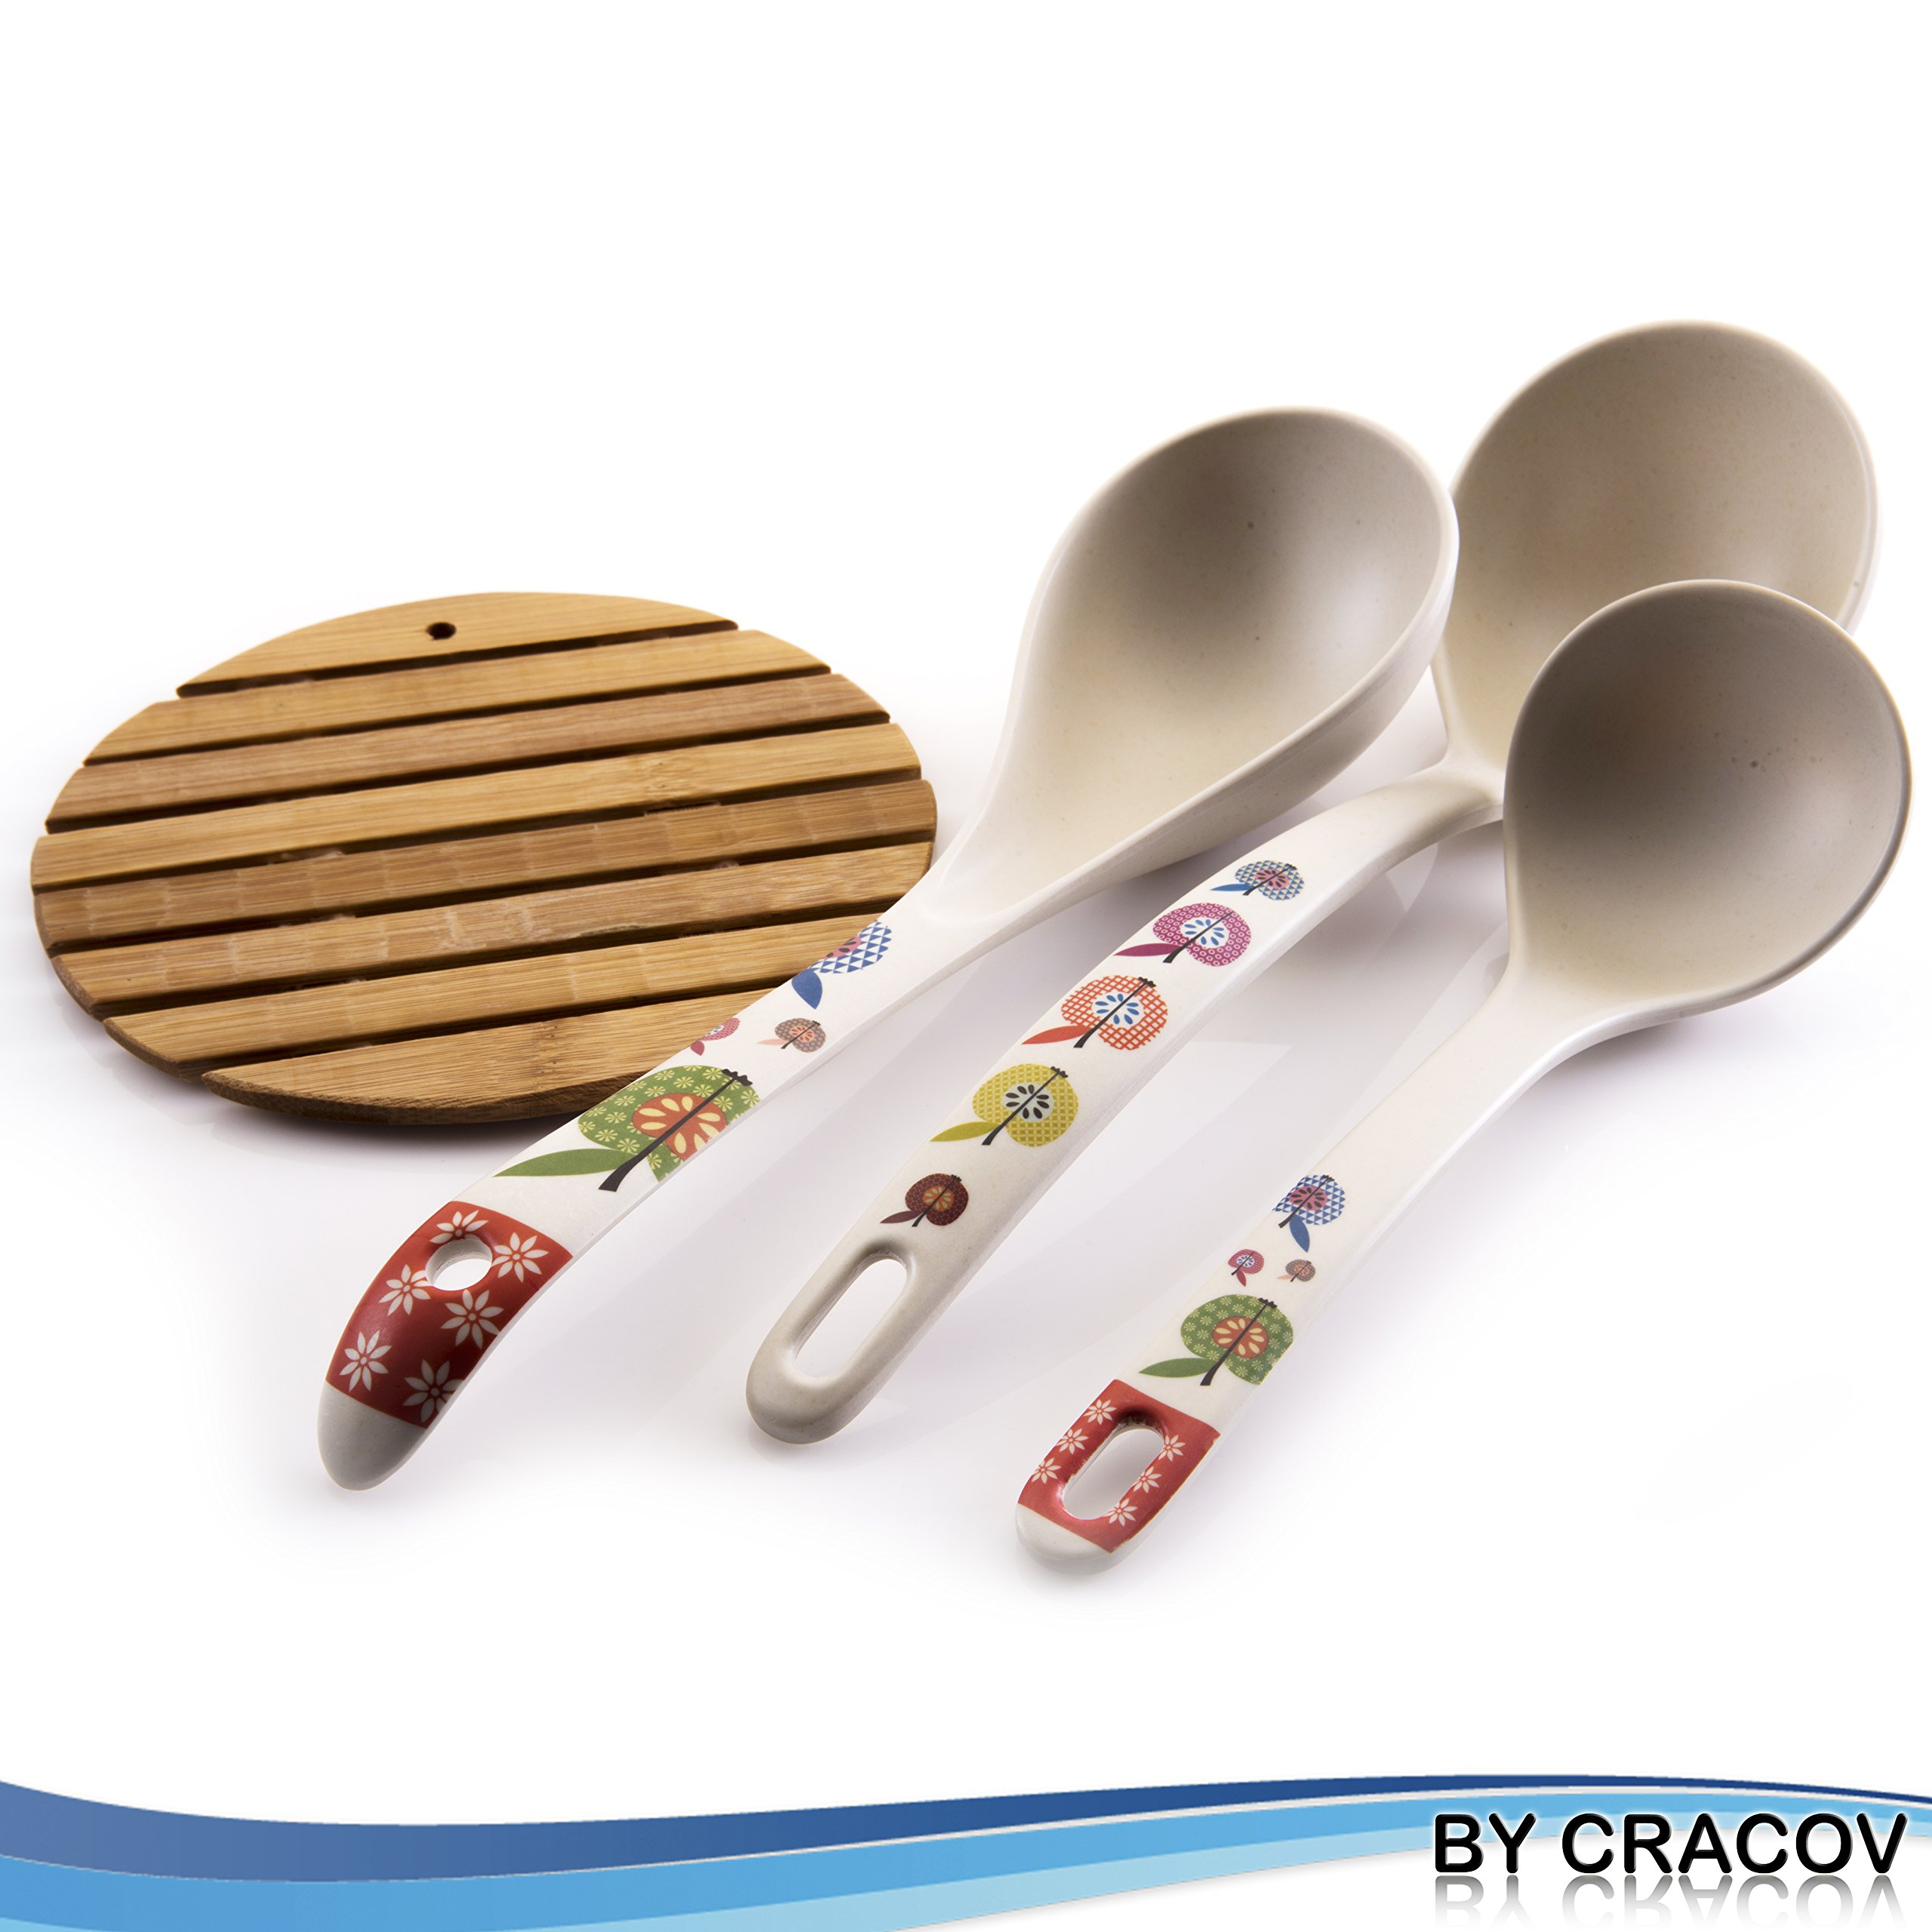 Premium Bamboo Kitchen Ladles, All Natural, Made From 100%, Naturally Fallen Bamboo, Earth Friendly, Great For Soups & Sauces, Perfect Addition To Your Kitchen Utensil Collection, Bamboo Pad Included